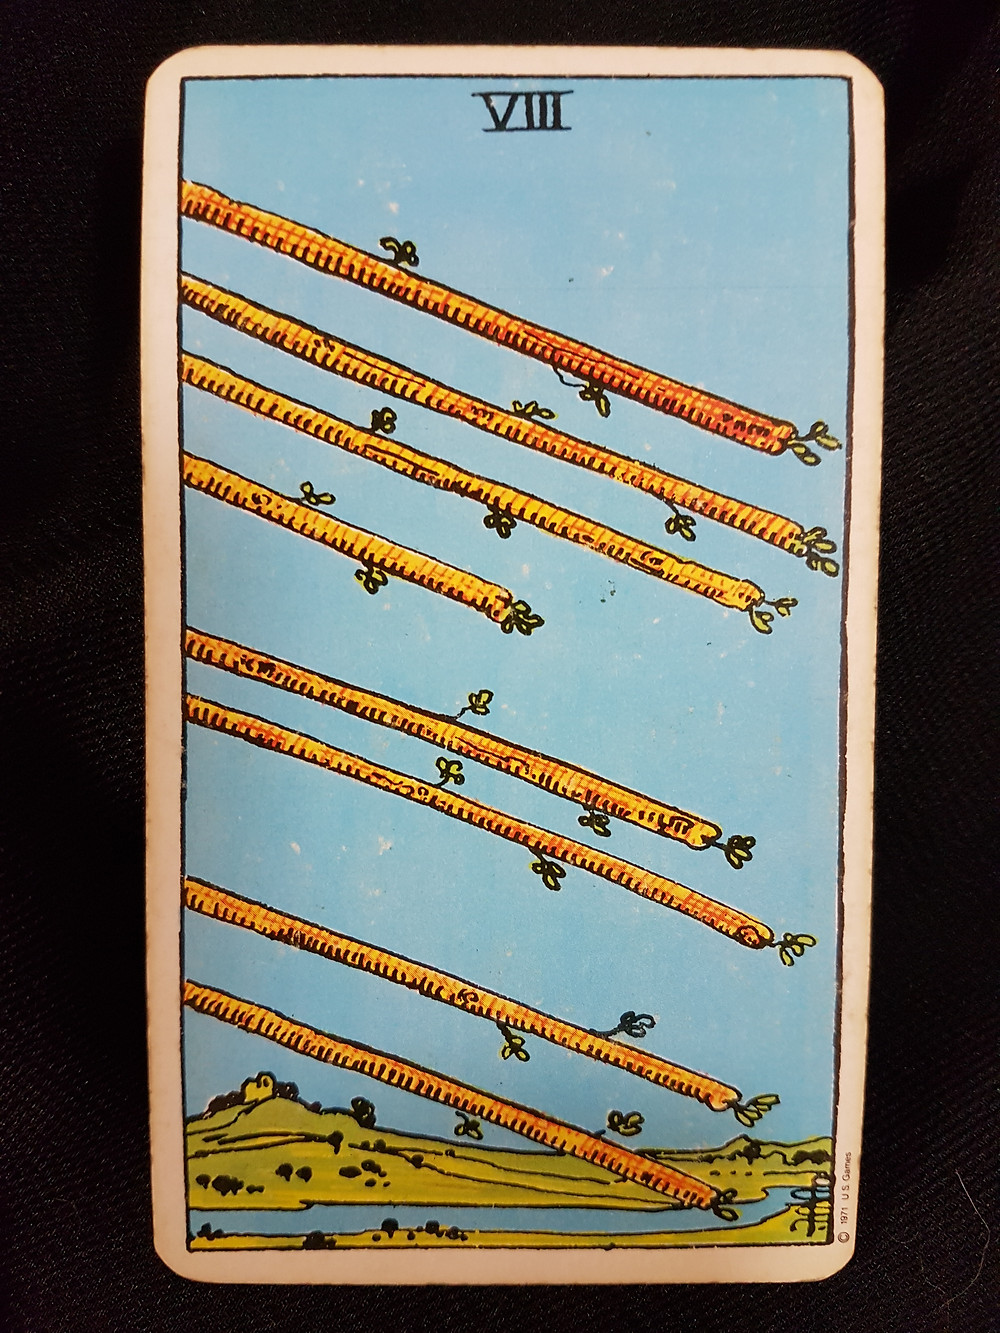 8 of wands - lynsreadings.com